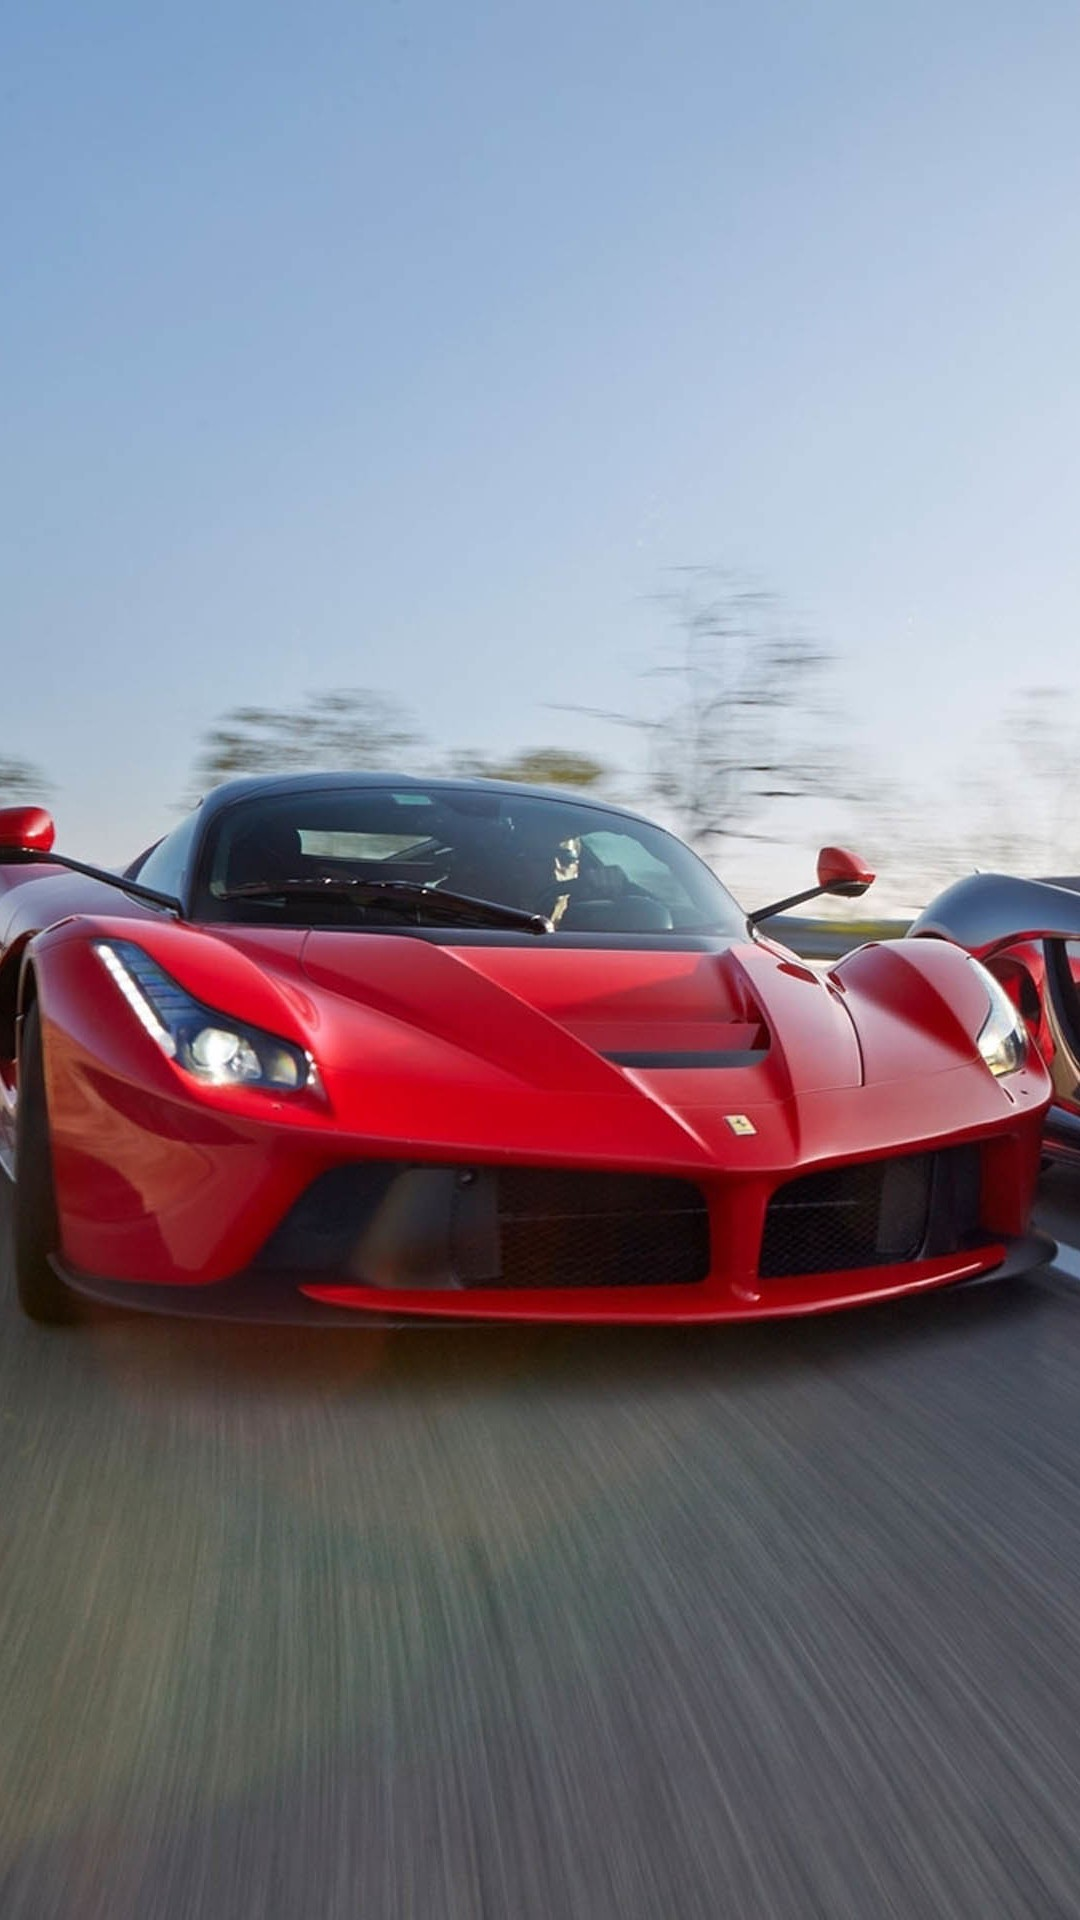 Fast Car Wallpaper 62 Images